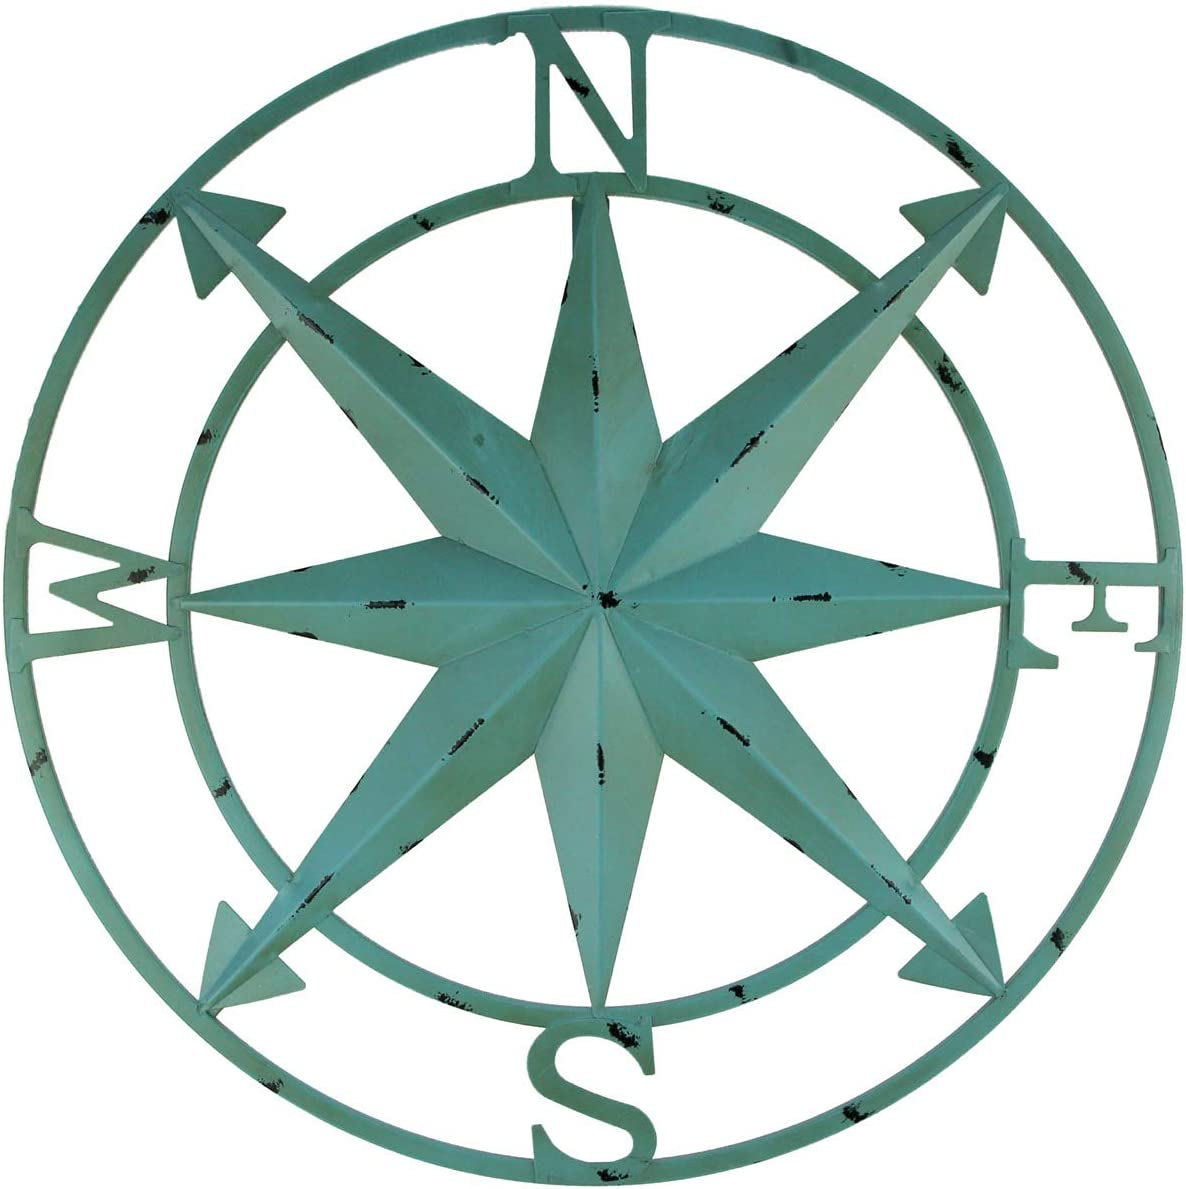 Zeckos 20 Inch Distressed Metal Compass Rose Nautical Wall Decor Indoor Outdoor, Blue